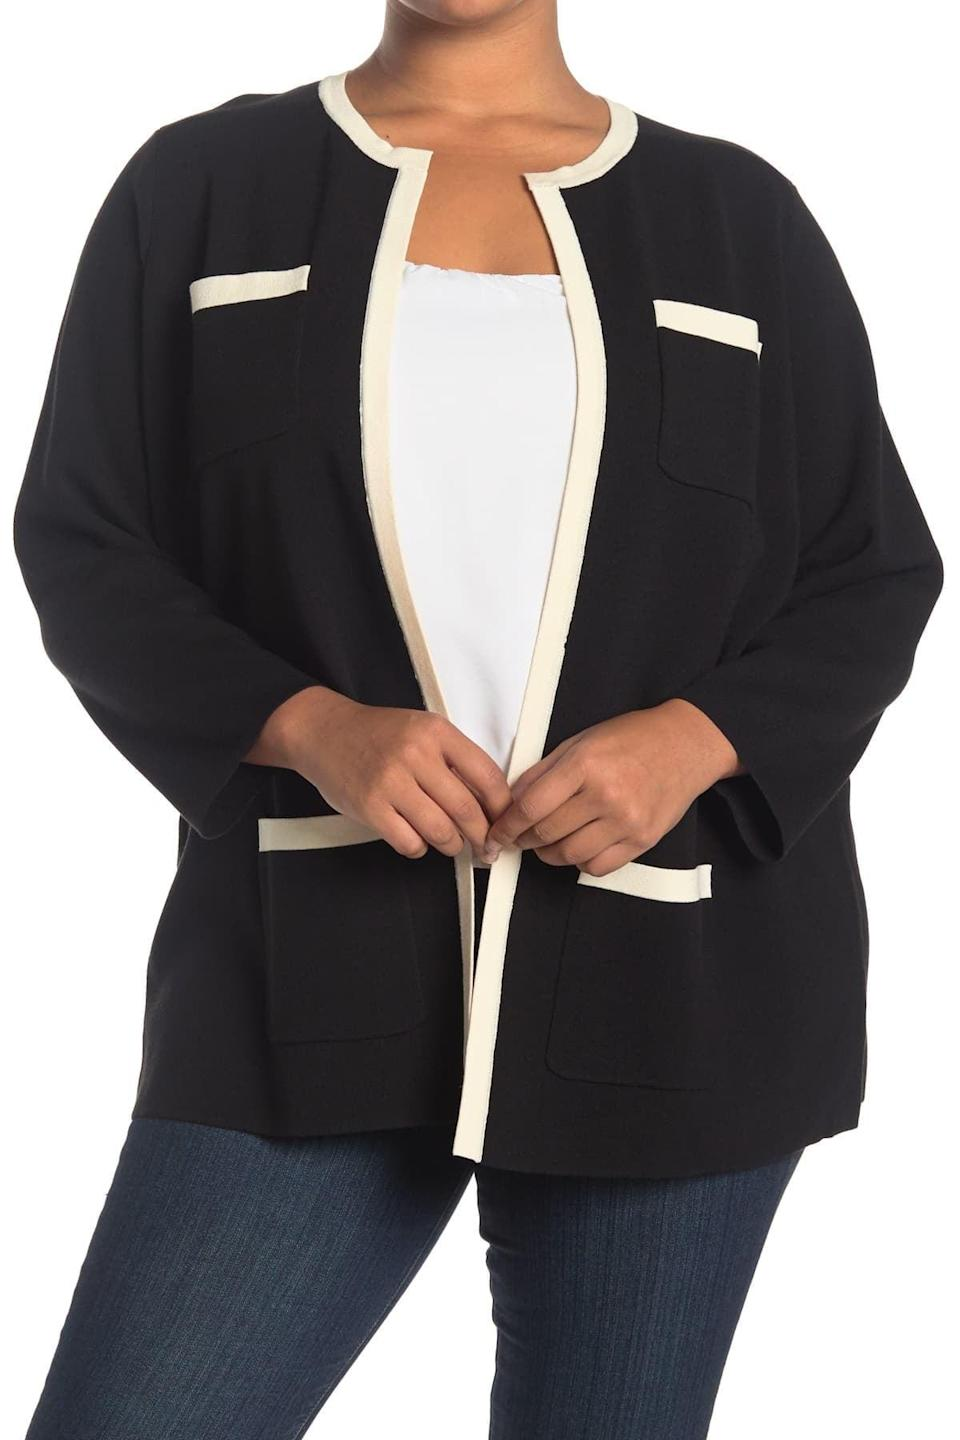 <p>This <span>Anne Klein Colorblock Cardigan</span> ($21, originally $139) will take you from the office to a chic date night.</p>